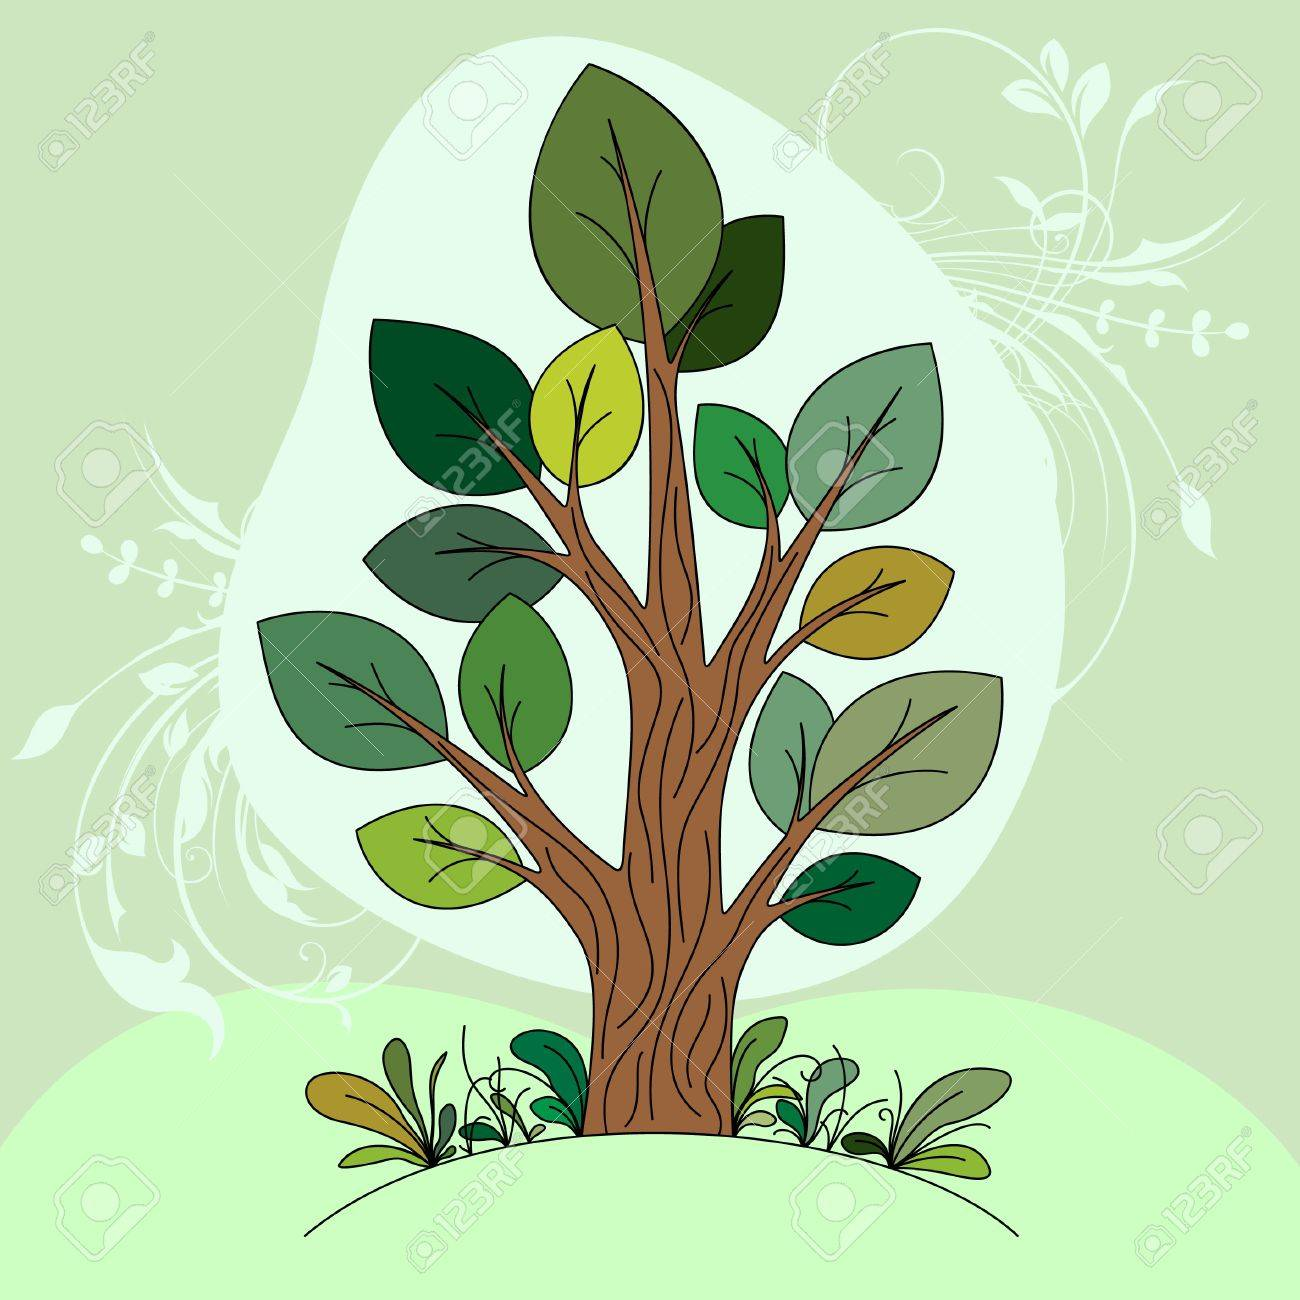 Hand Drawn Tree Color Royalty Free Cliparts, Vectors, And Stock ...